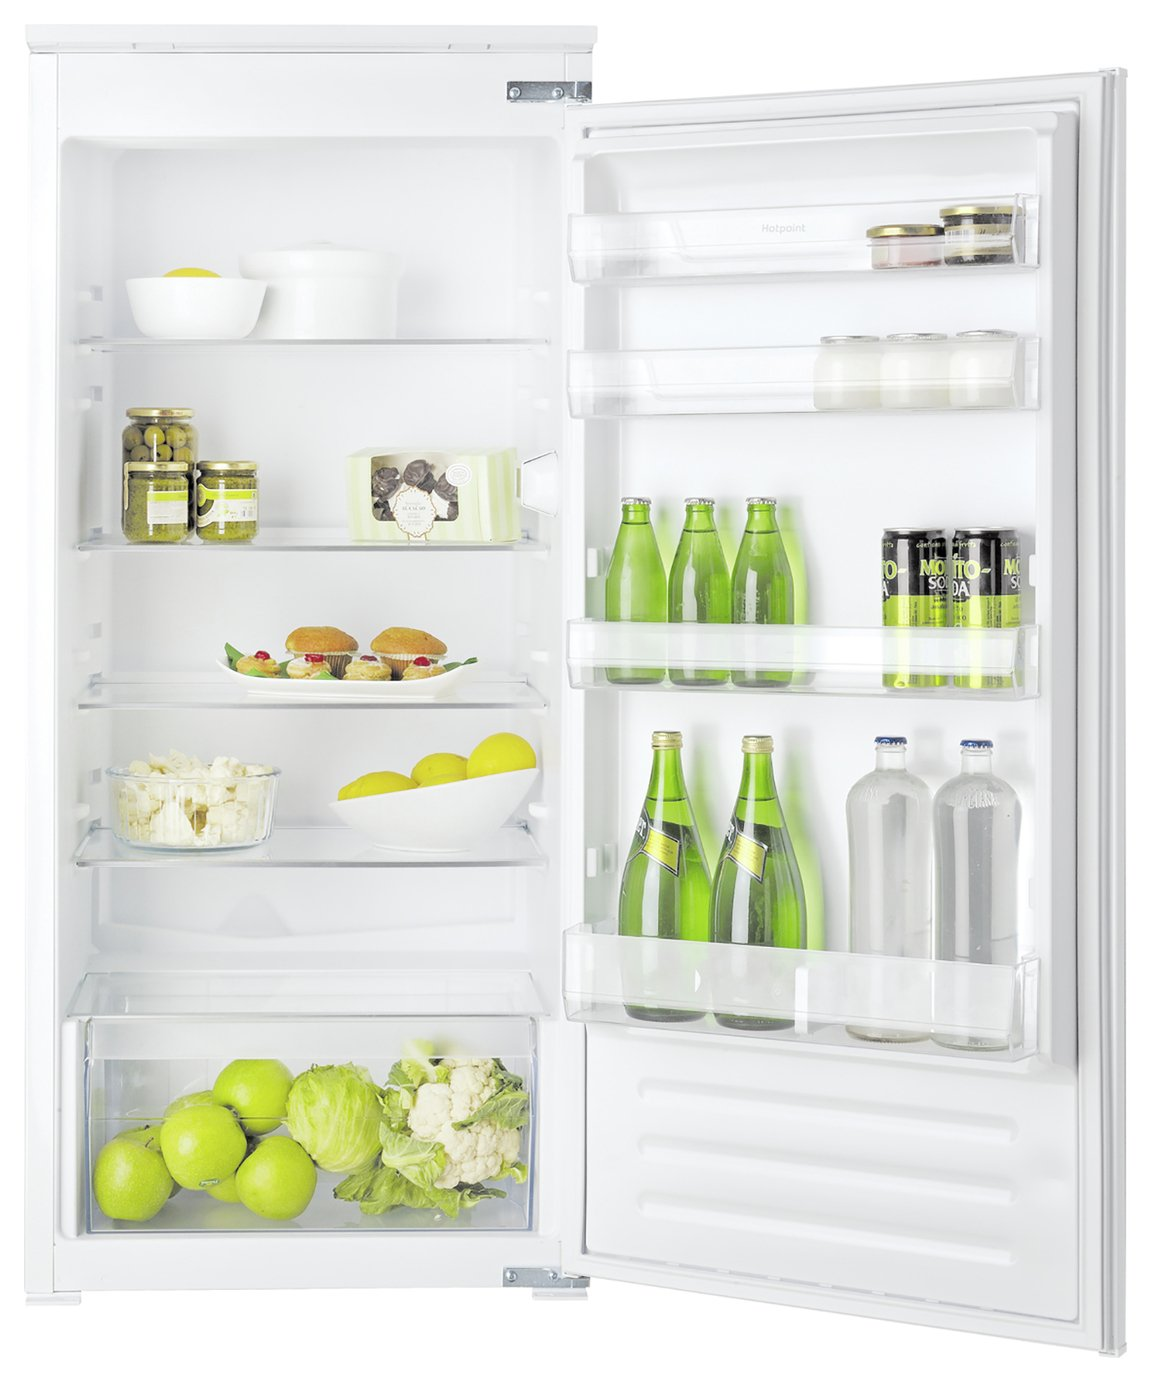 Image of Hotpoint HSZ 12 A1 D Built-In Fridge - White.